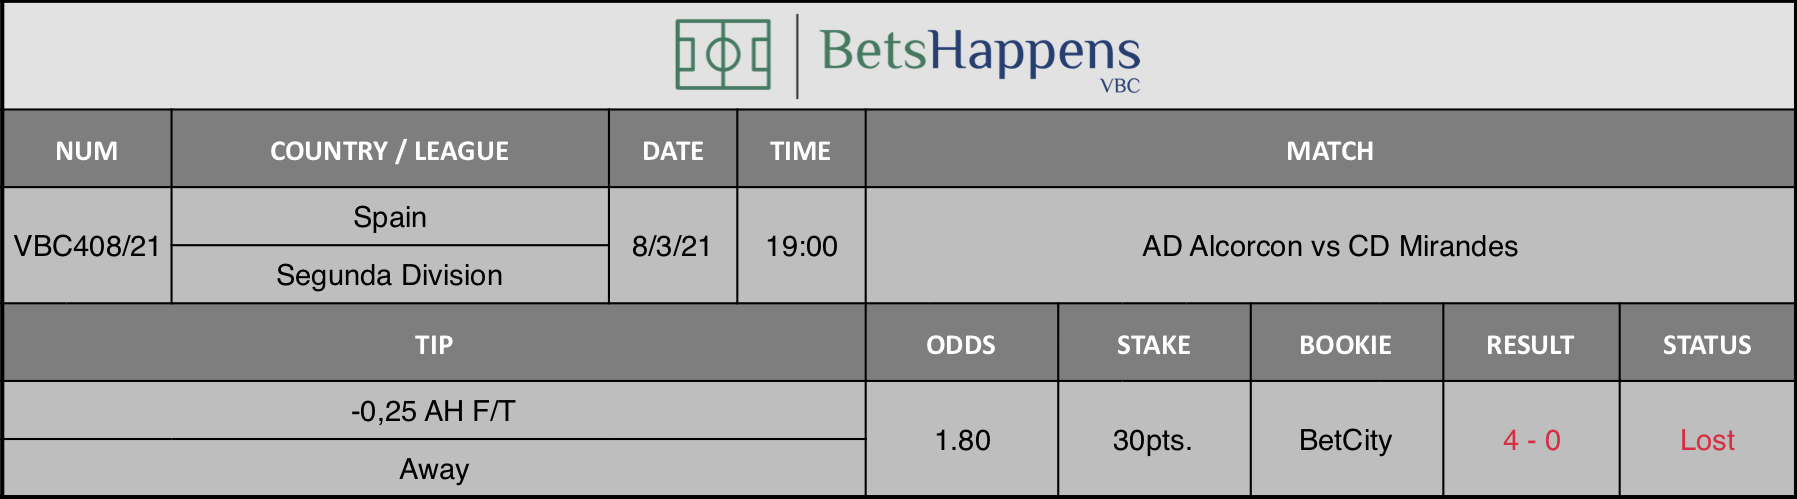 Results of our tip for the AD Alcorcon vs CD Mirandes match where -0,25 AH F/T Away is recommended.